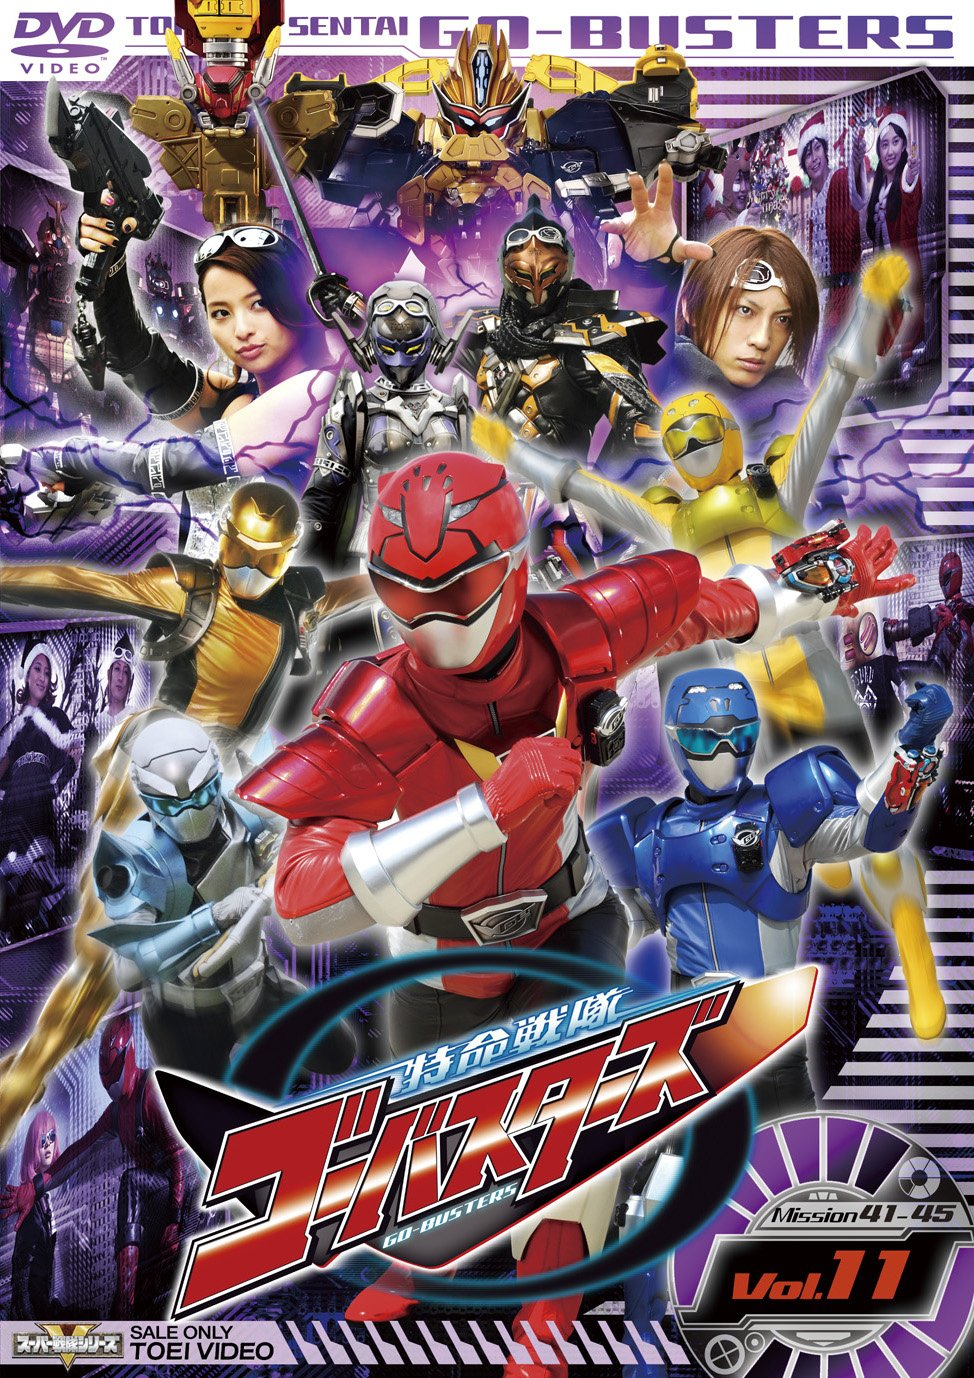 File:Go-Busters DVD Vol 11.jpg